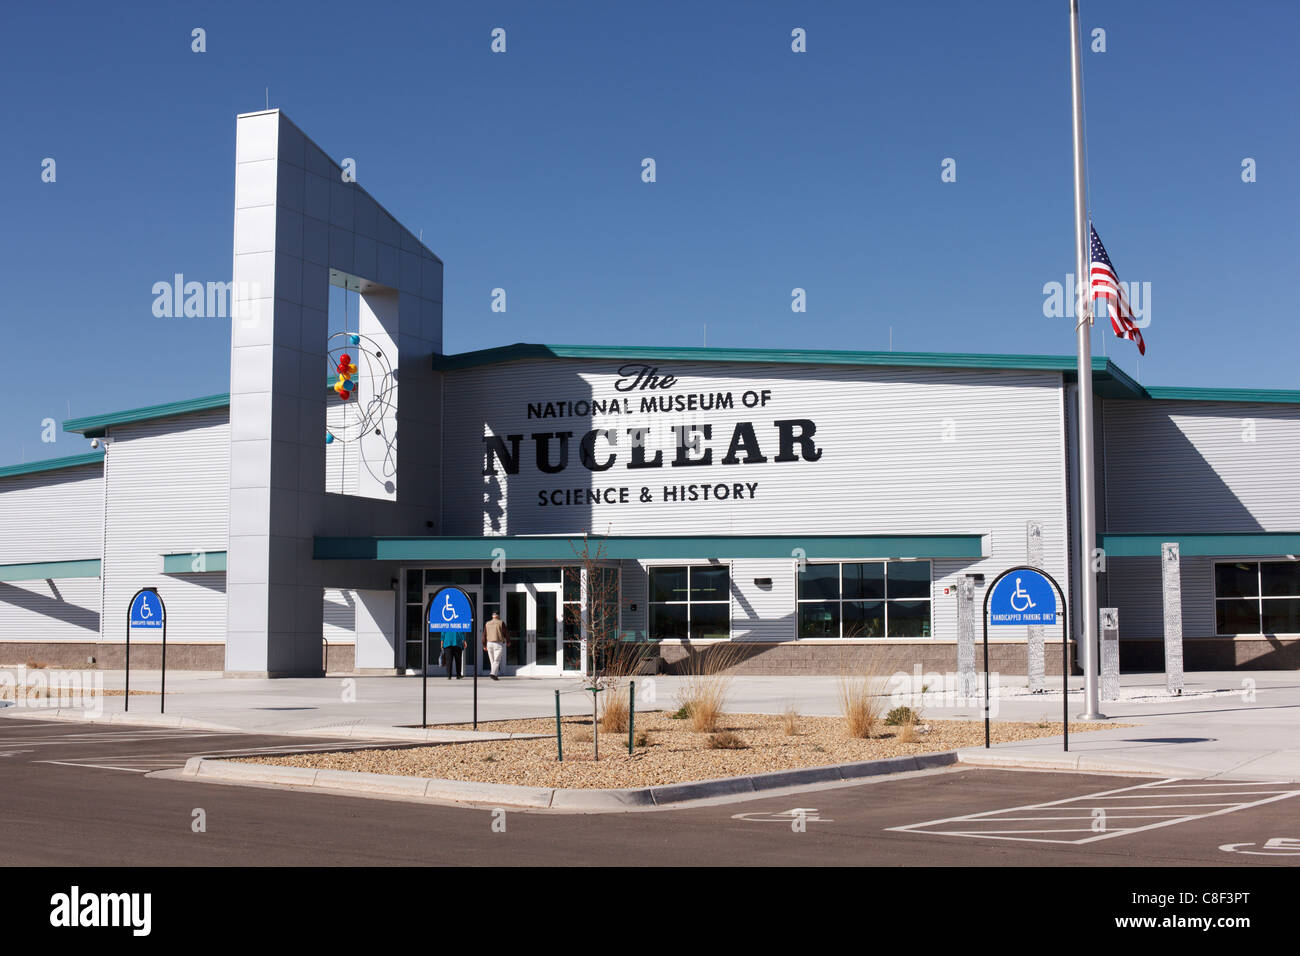 The National Museum of Nuclear Science and History, Albuquerque, New Mexico. - Stock Image